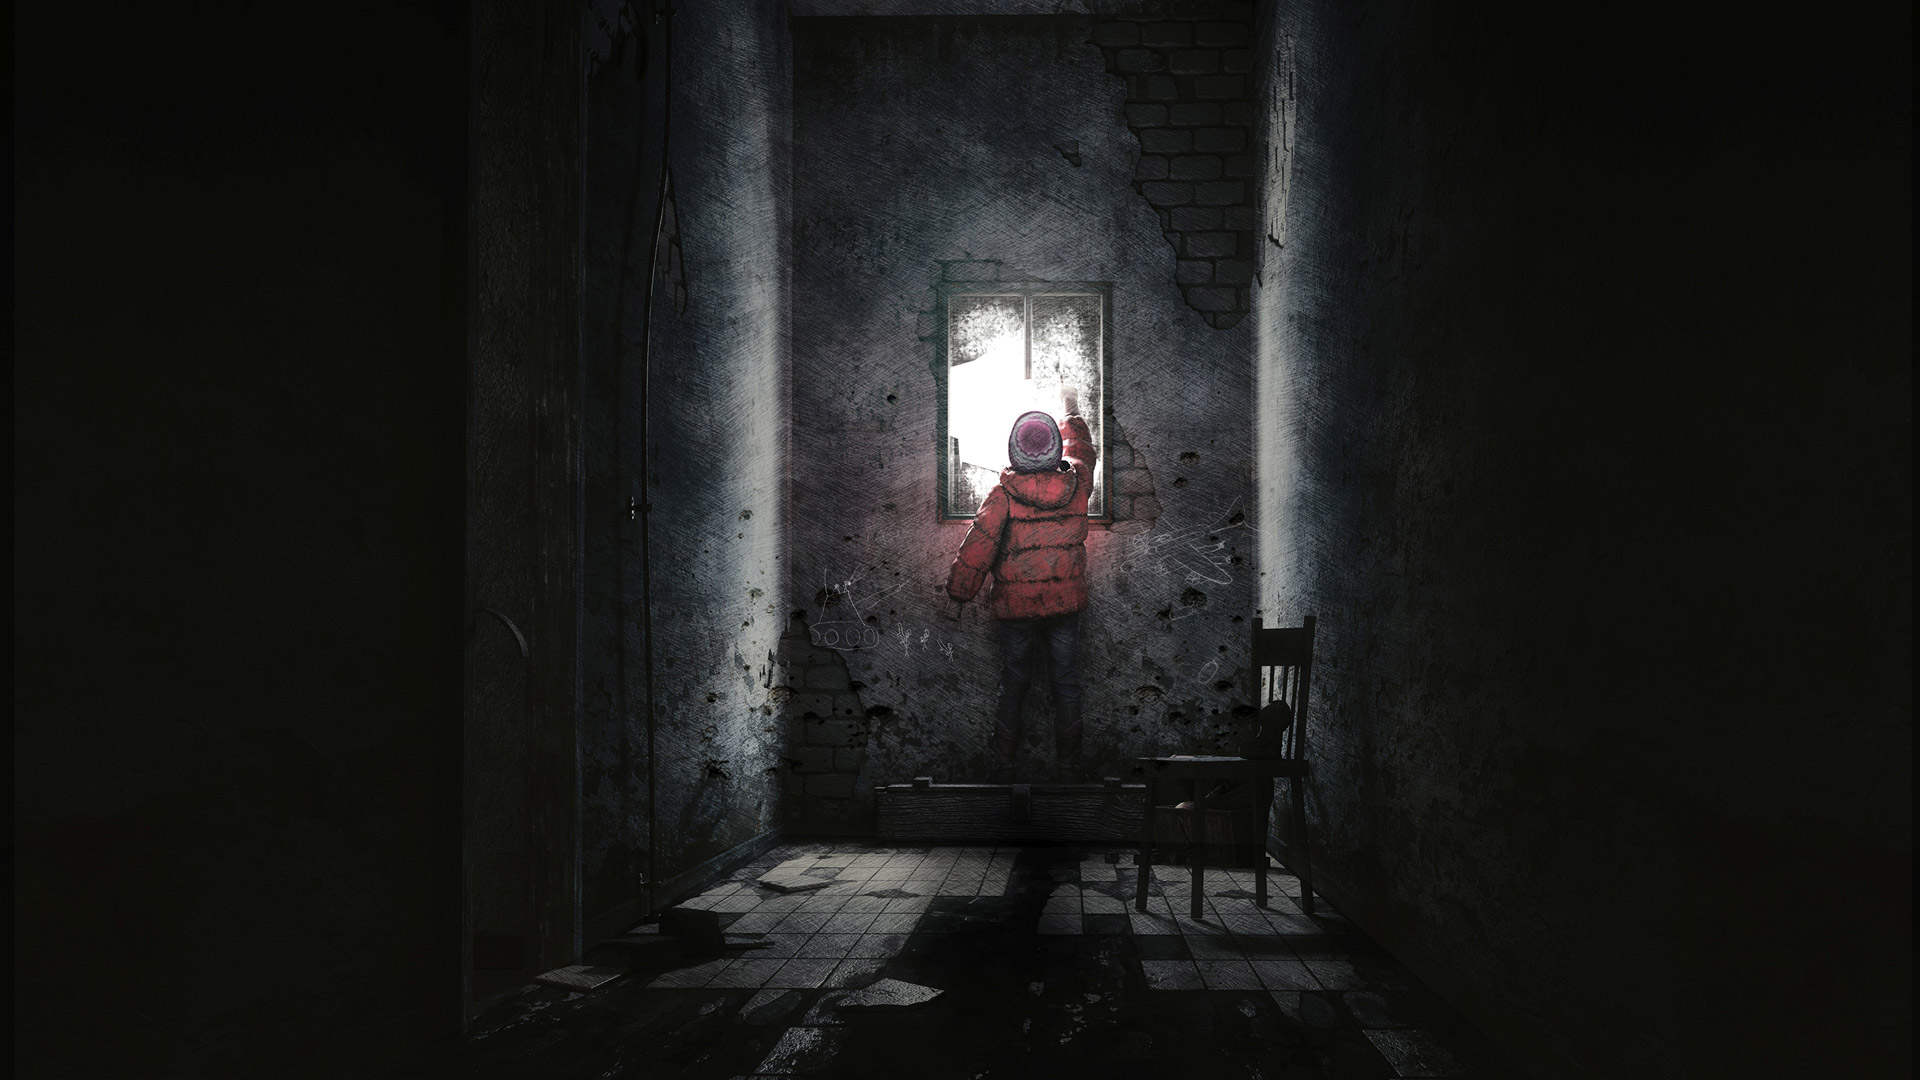 Free This War of Mine Wallpaper in 1920x1080